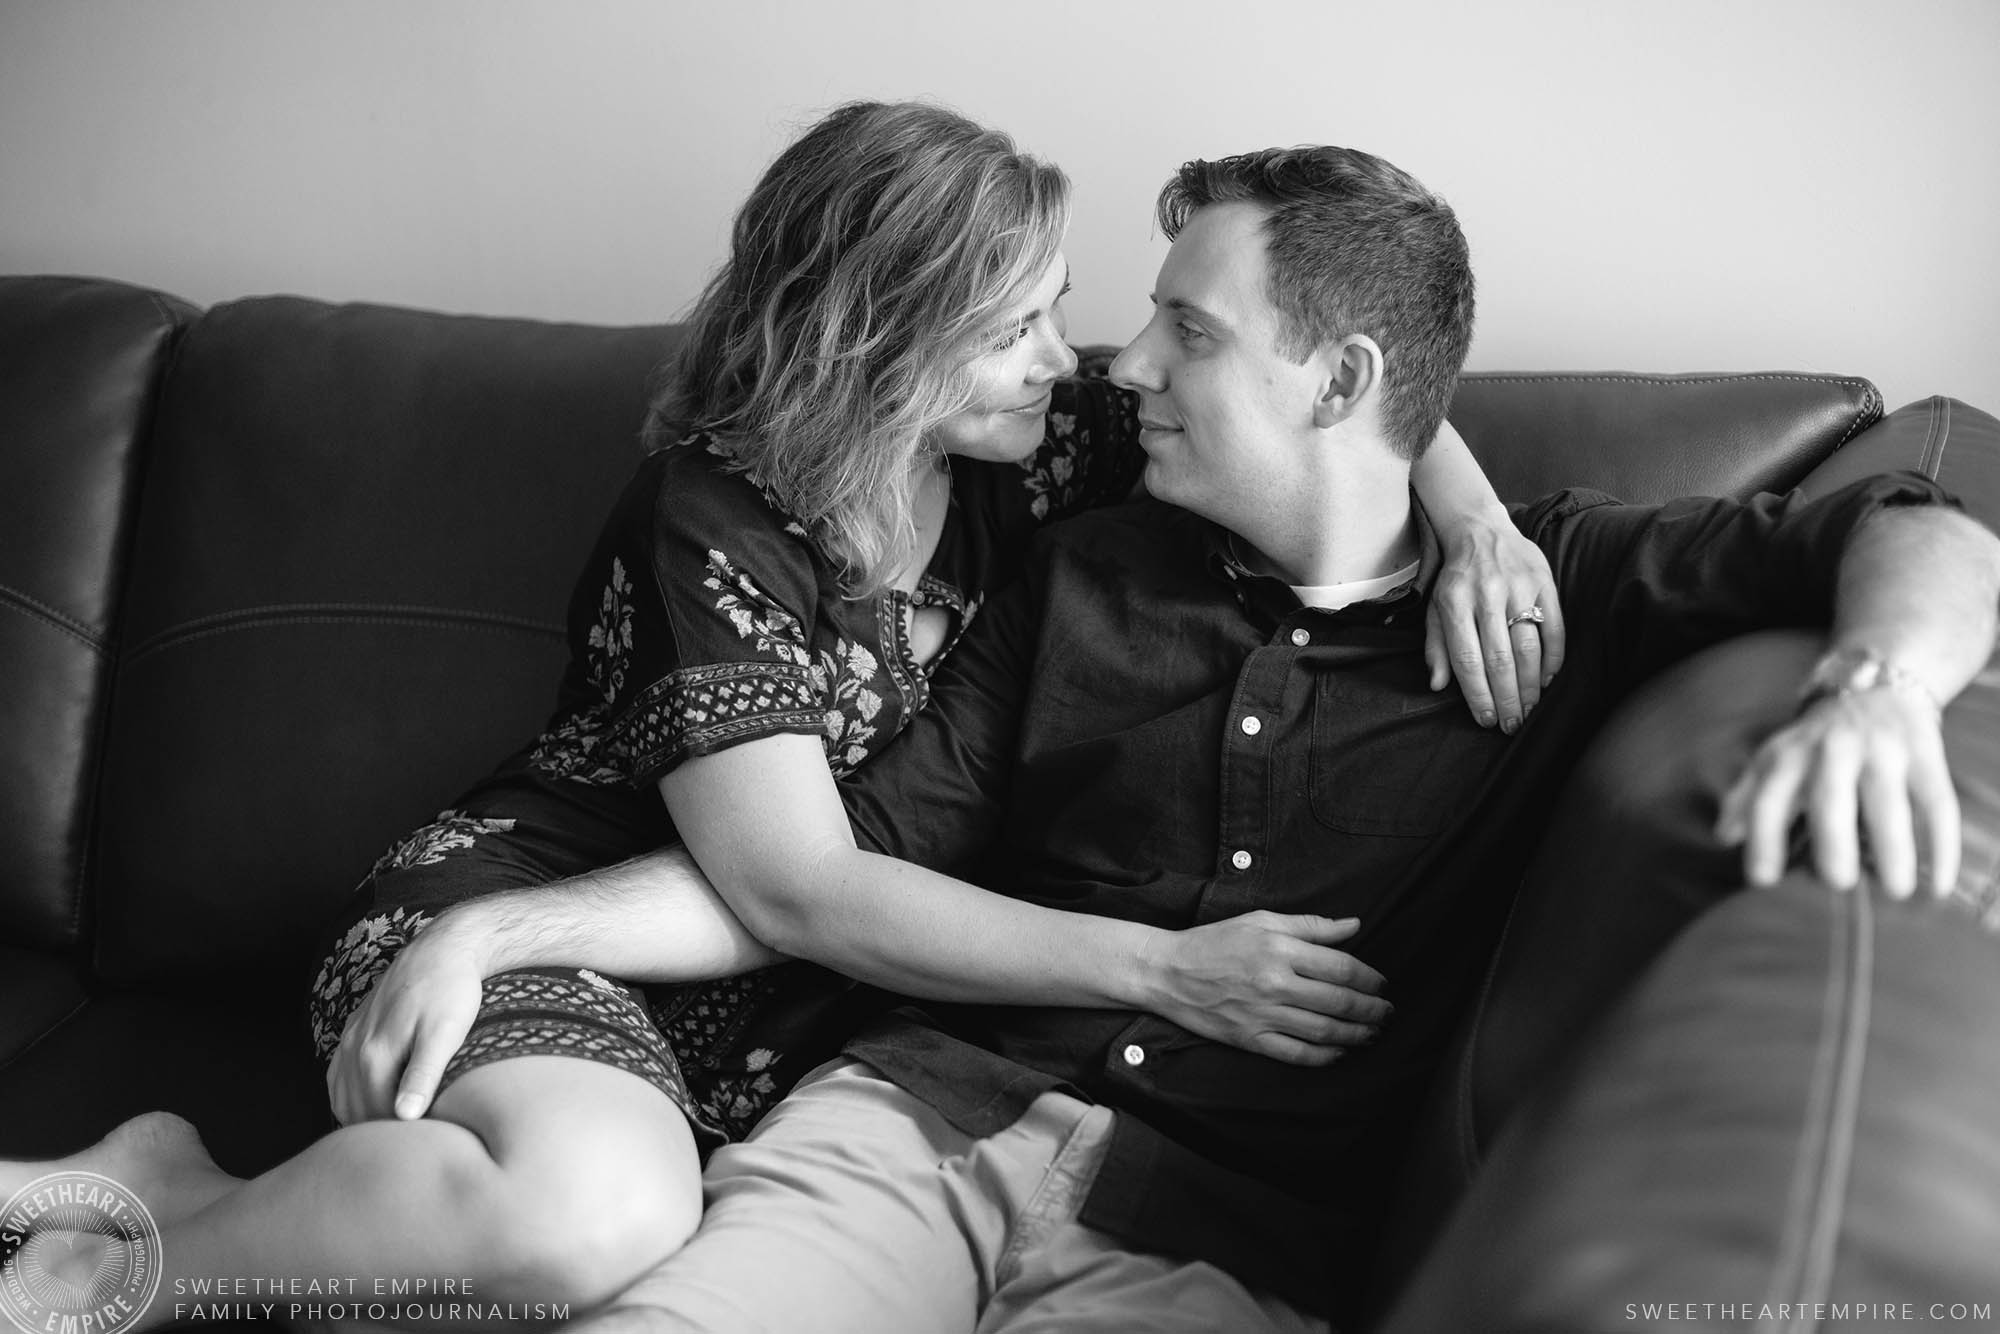 17_Wife and husband chatting and embracing on couch.jpg